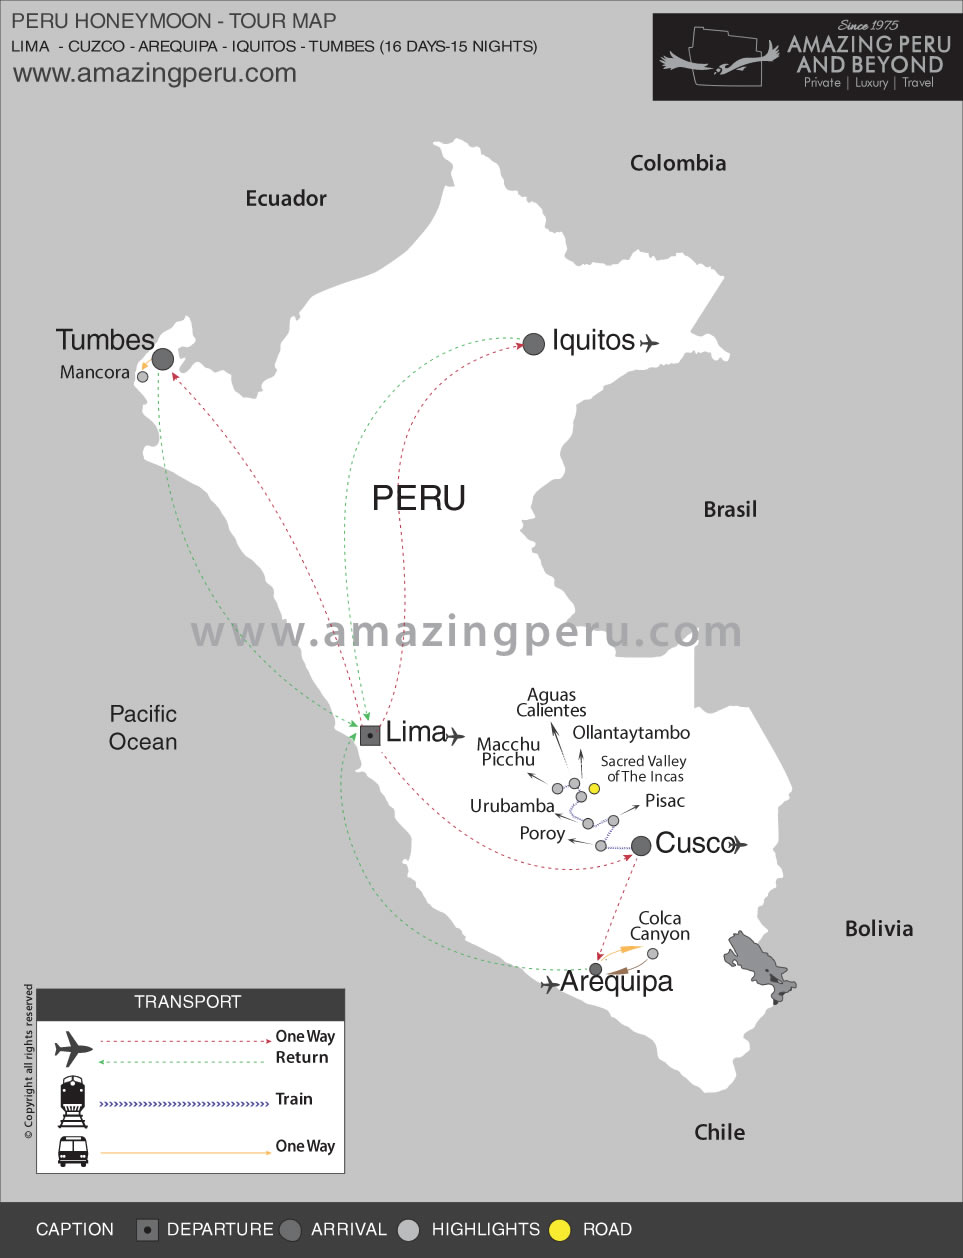 Peru Honeymoon Tour 2 - 16 days / 15 nights.